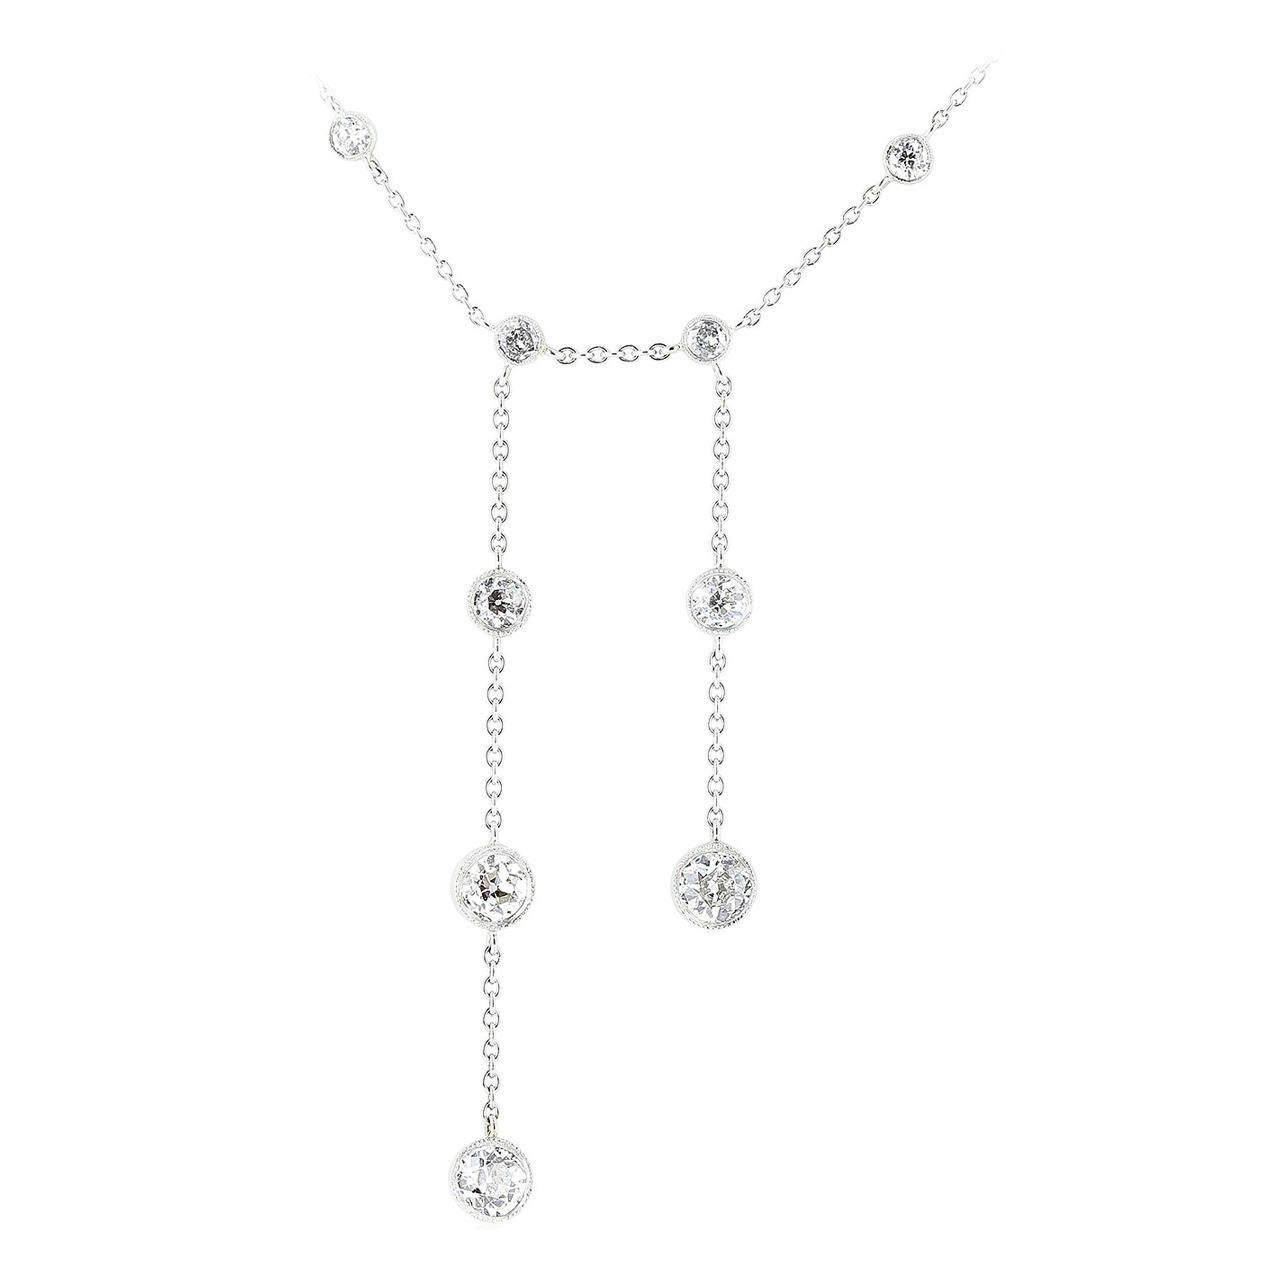 4.15 Carat Mine Cut Diamond Platinum Necklace